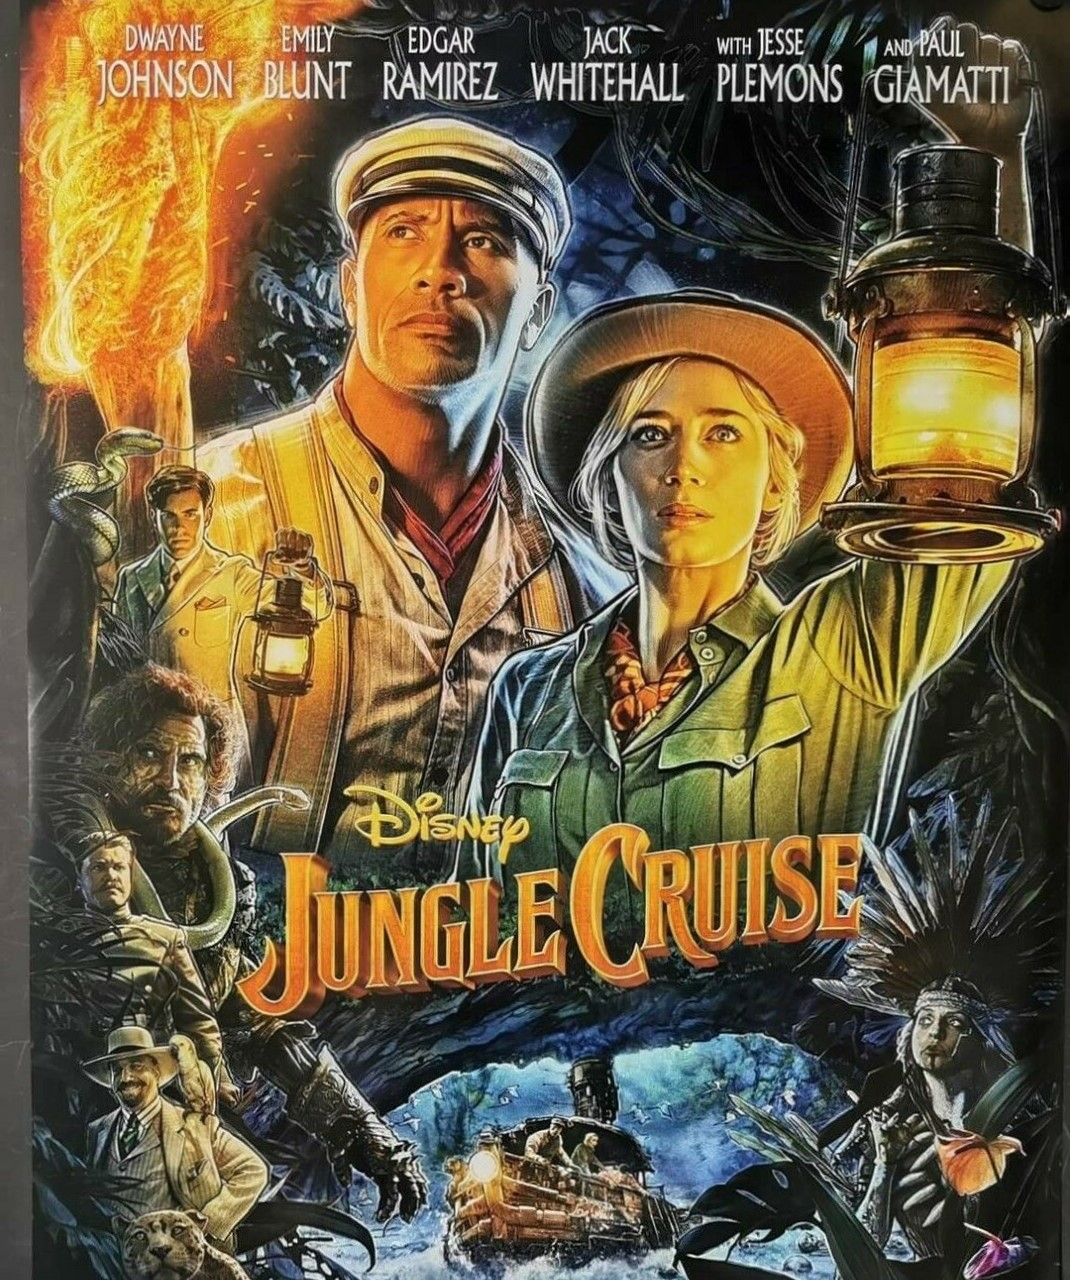 Jungle Cruise (2021) **** – Seen At TheCinema